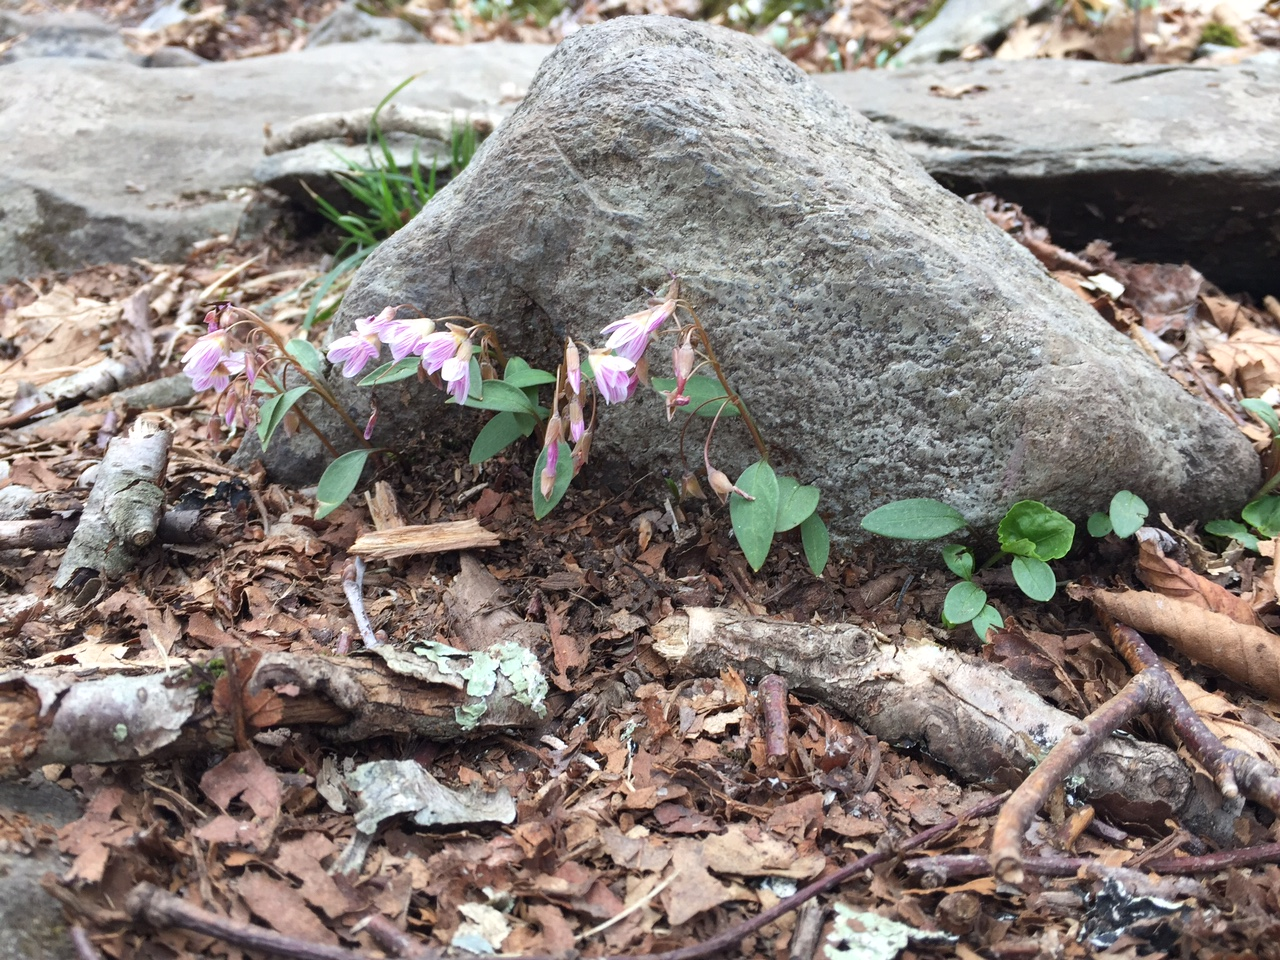 Flowers alongside the Appalachian Trail